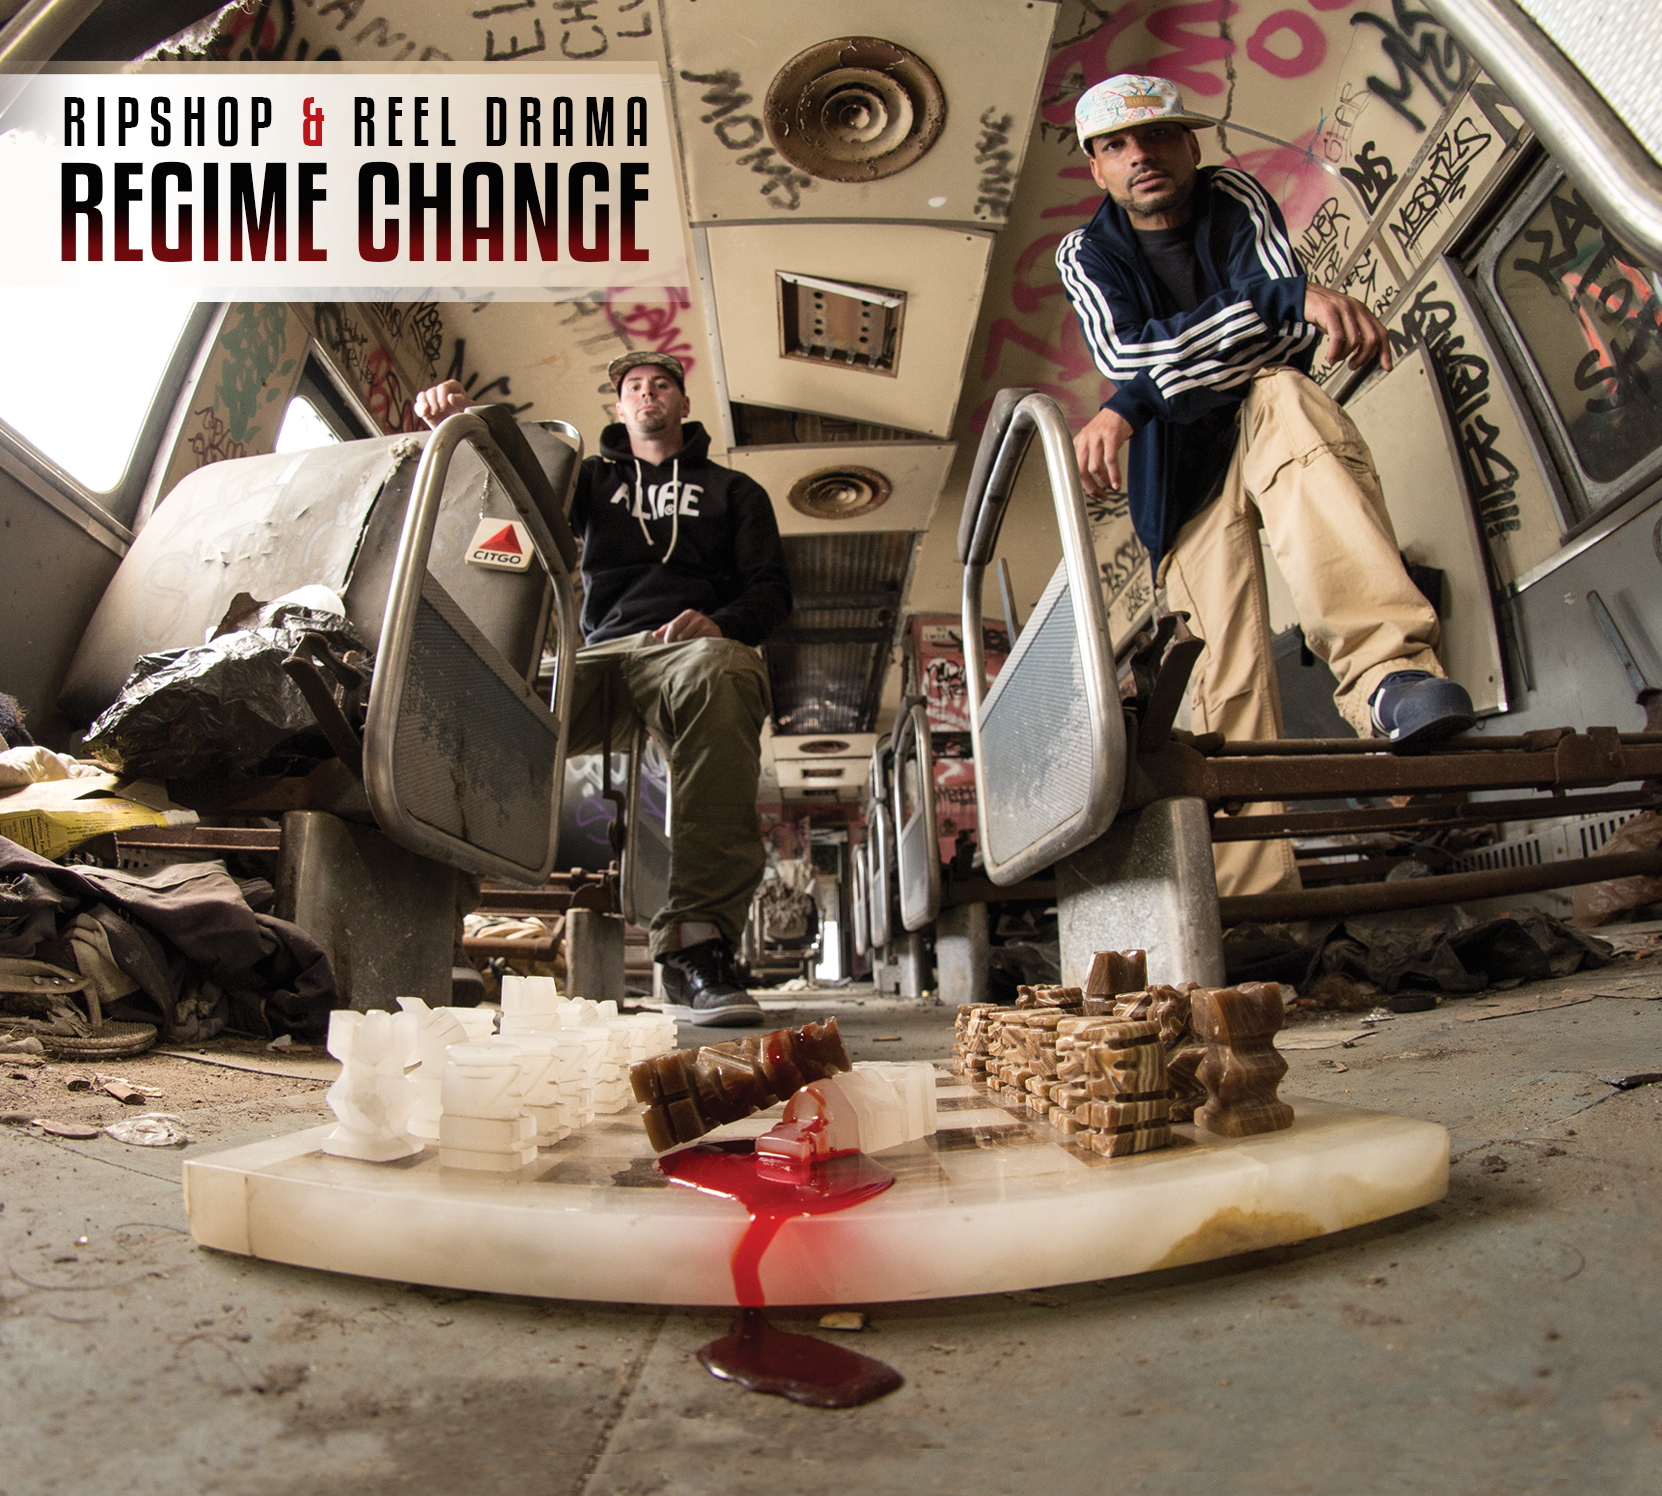 Ripshop & Reel Drama - Regime Change (cover art)